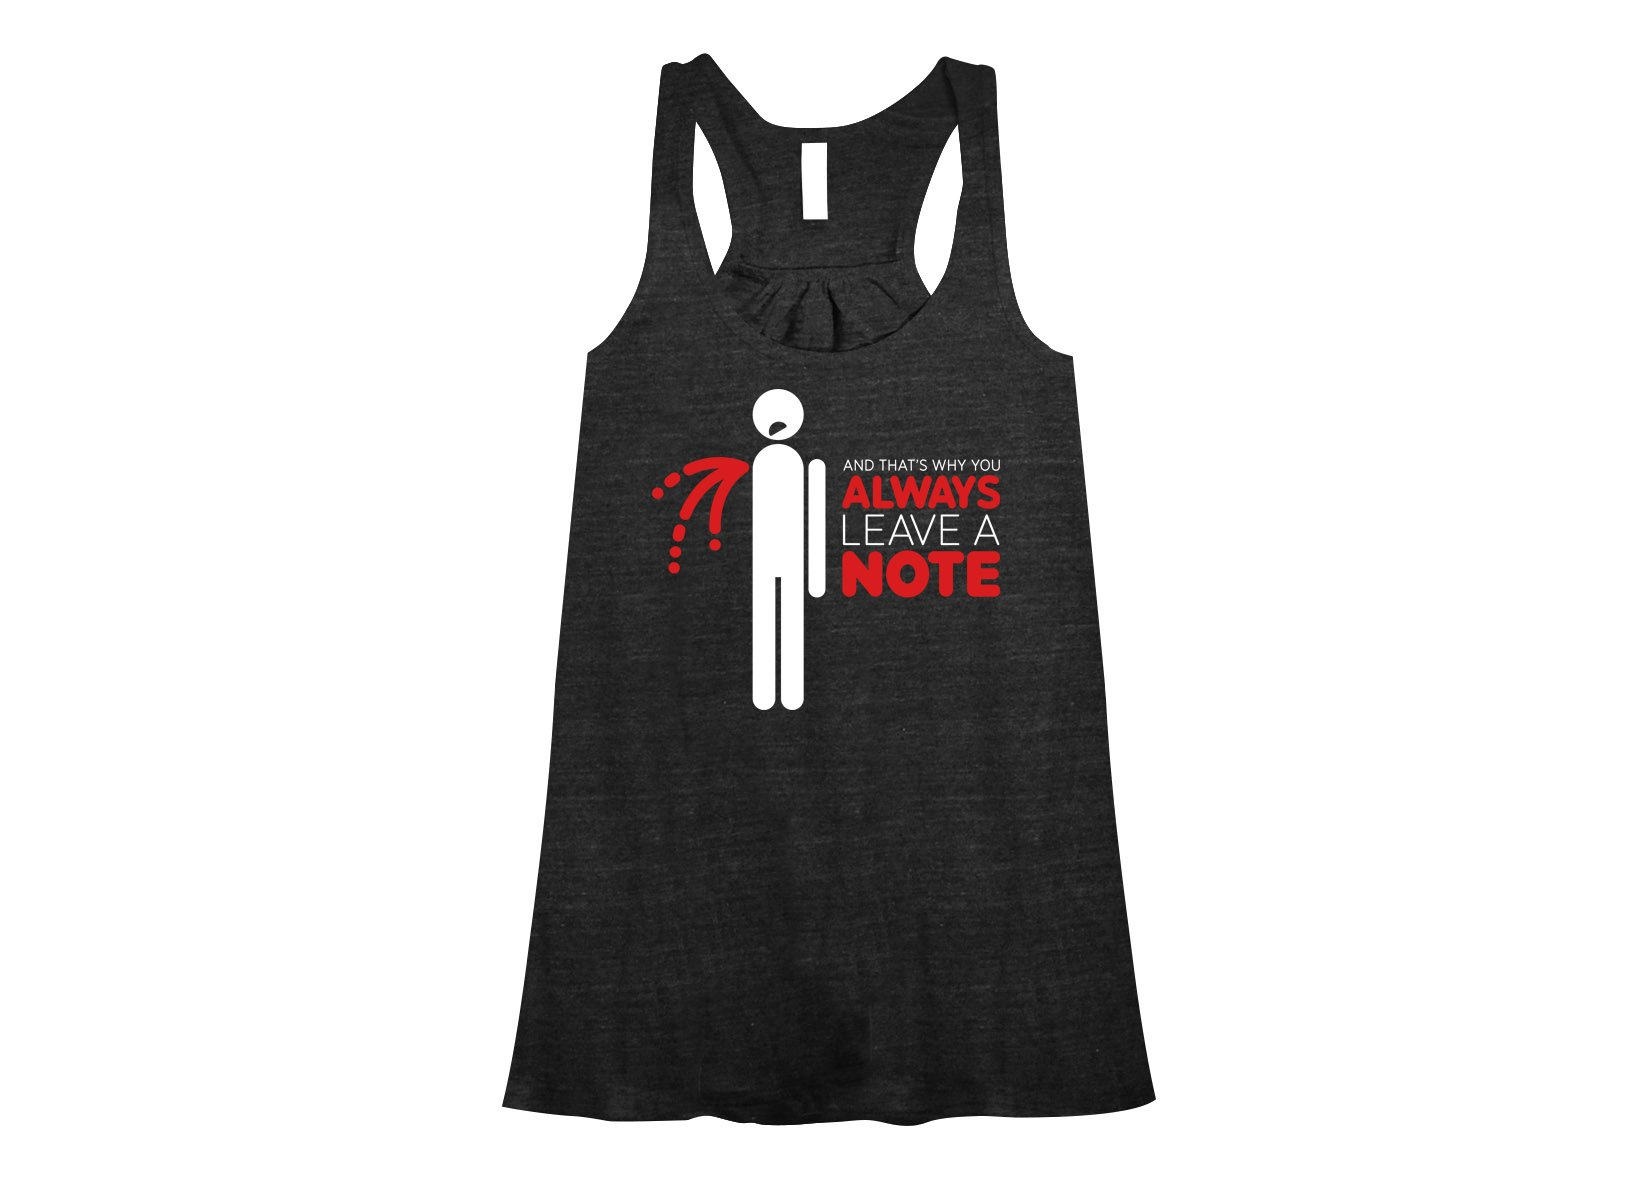 Always Leave A Note on Womens Tanks T-Shirt